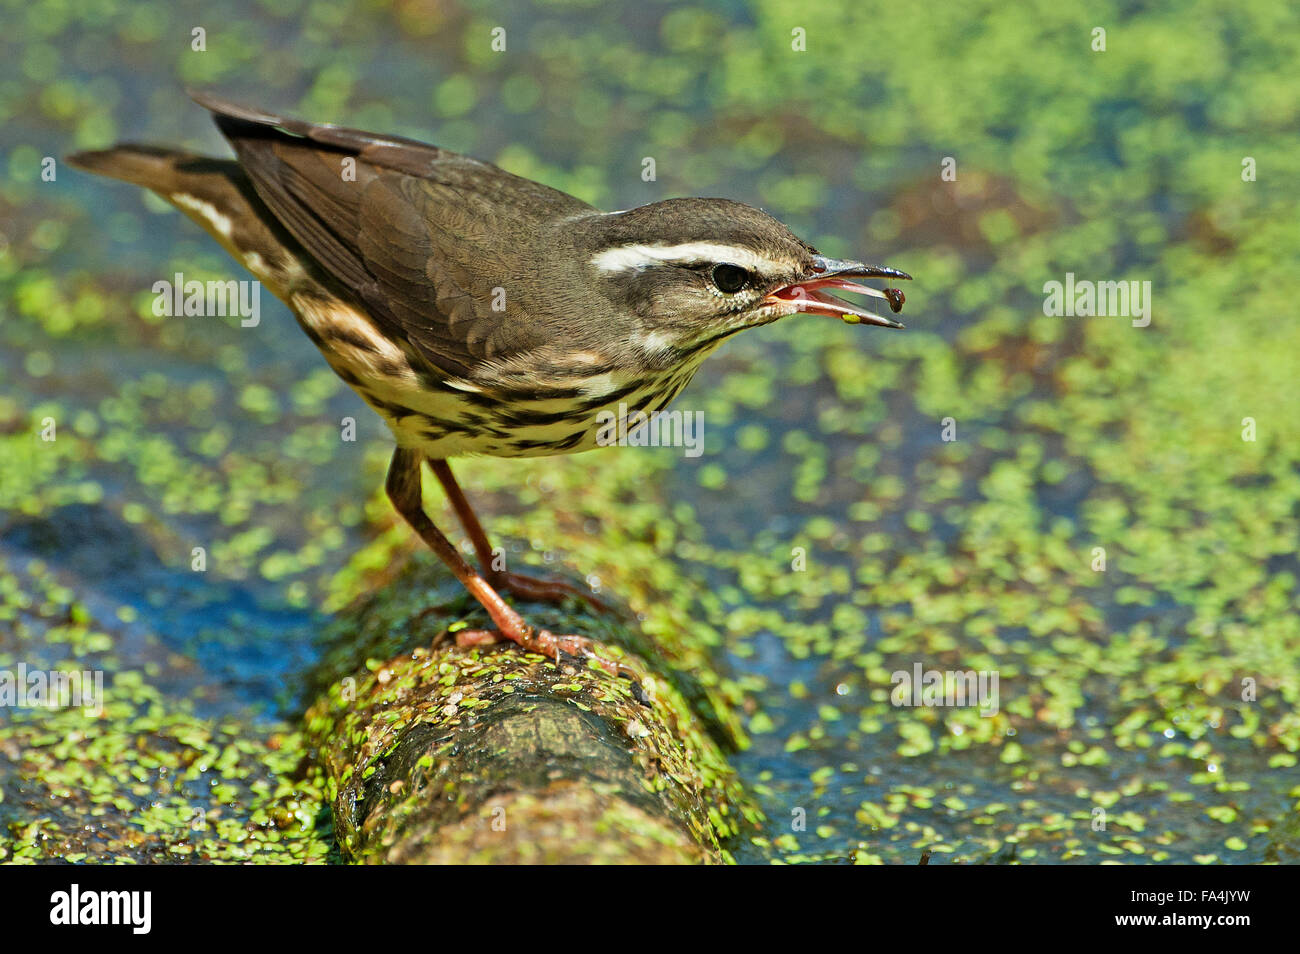 Louisiana Birds Of Prey High Resolution Stock Photography And Images Alamy